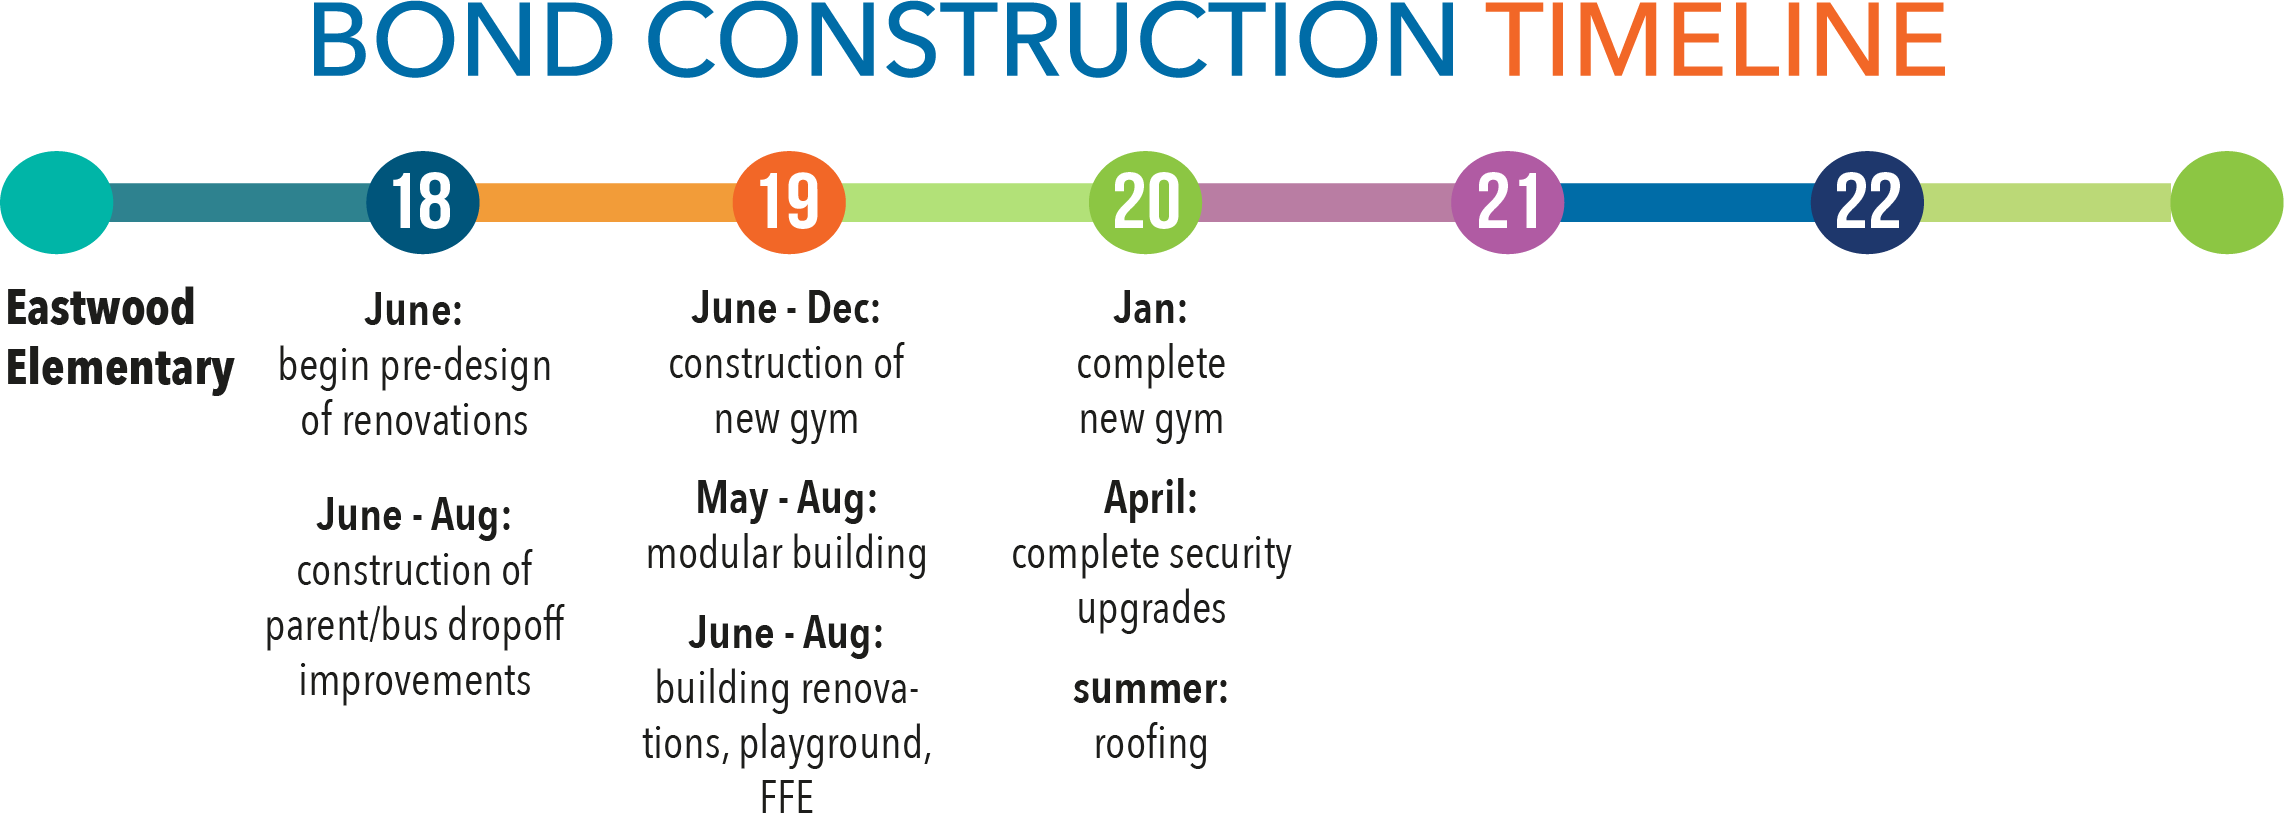 Eastwood bond construction timeline